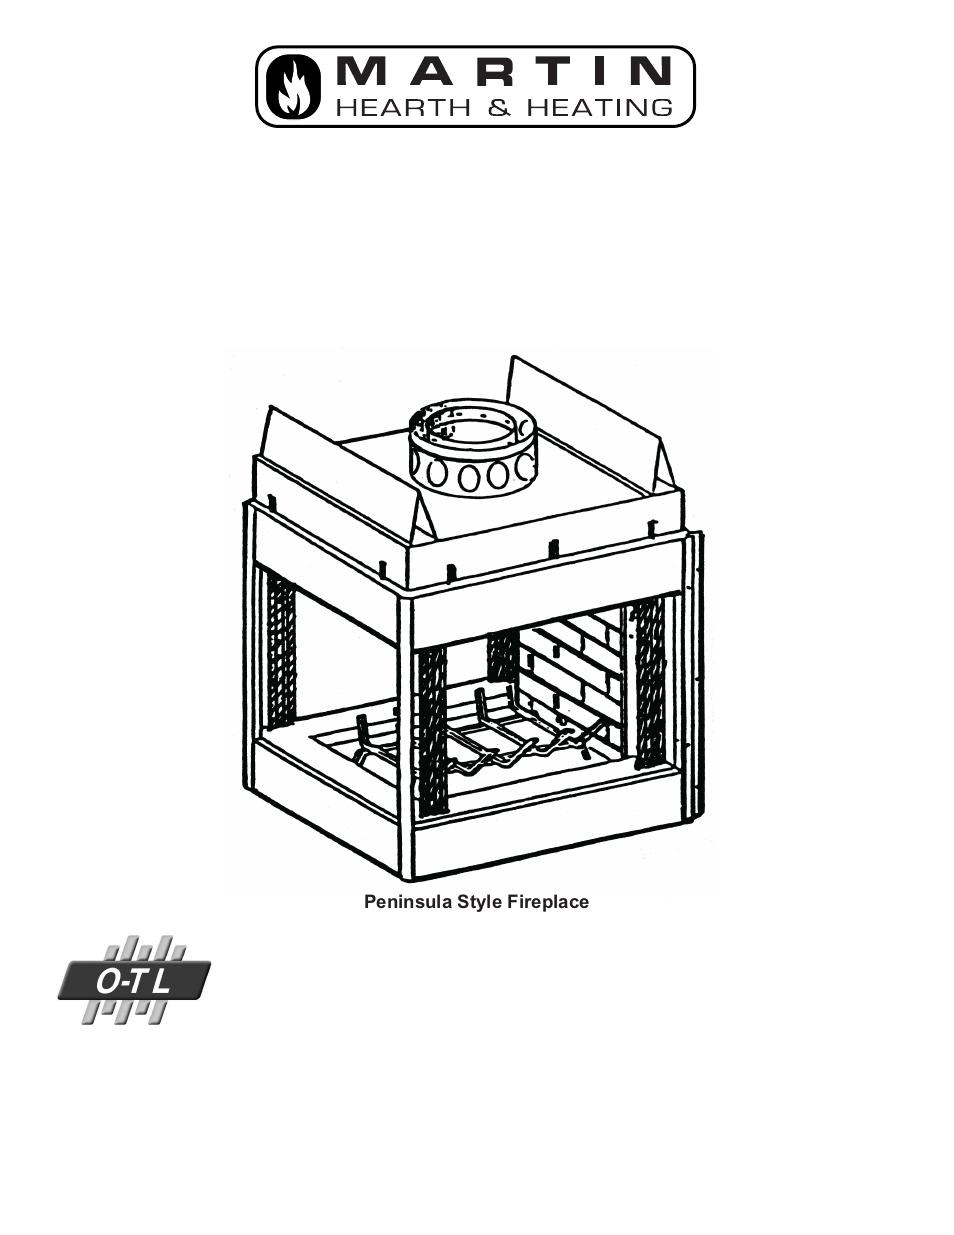 martin fireplaces mpl peninsula 53d9042 user manual 32 pages rh manualsdir com Martin Industries Fireplaces Company Holly Martin Oakhurst Electric Fireplace